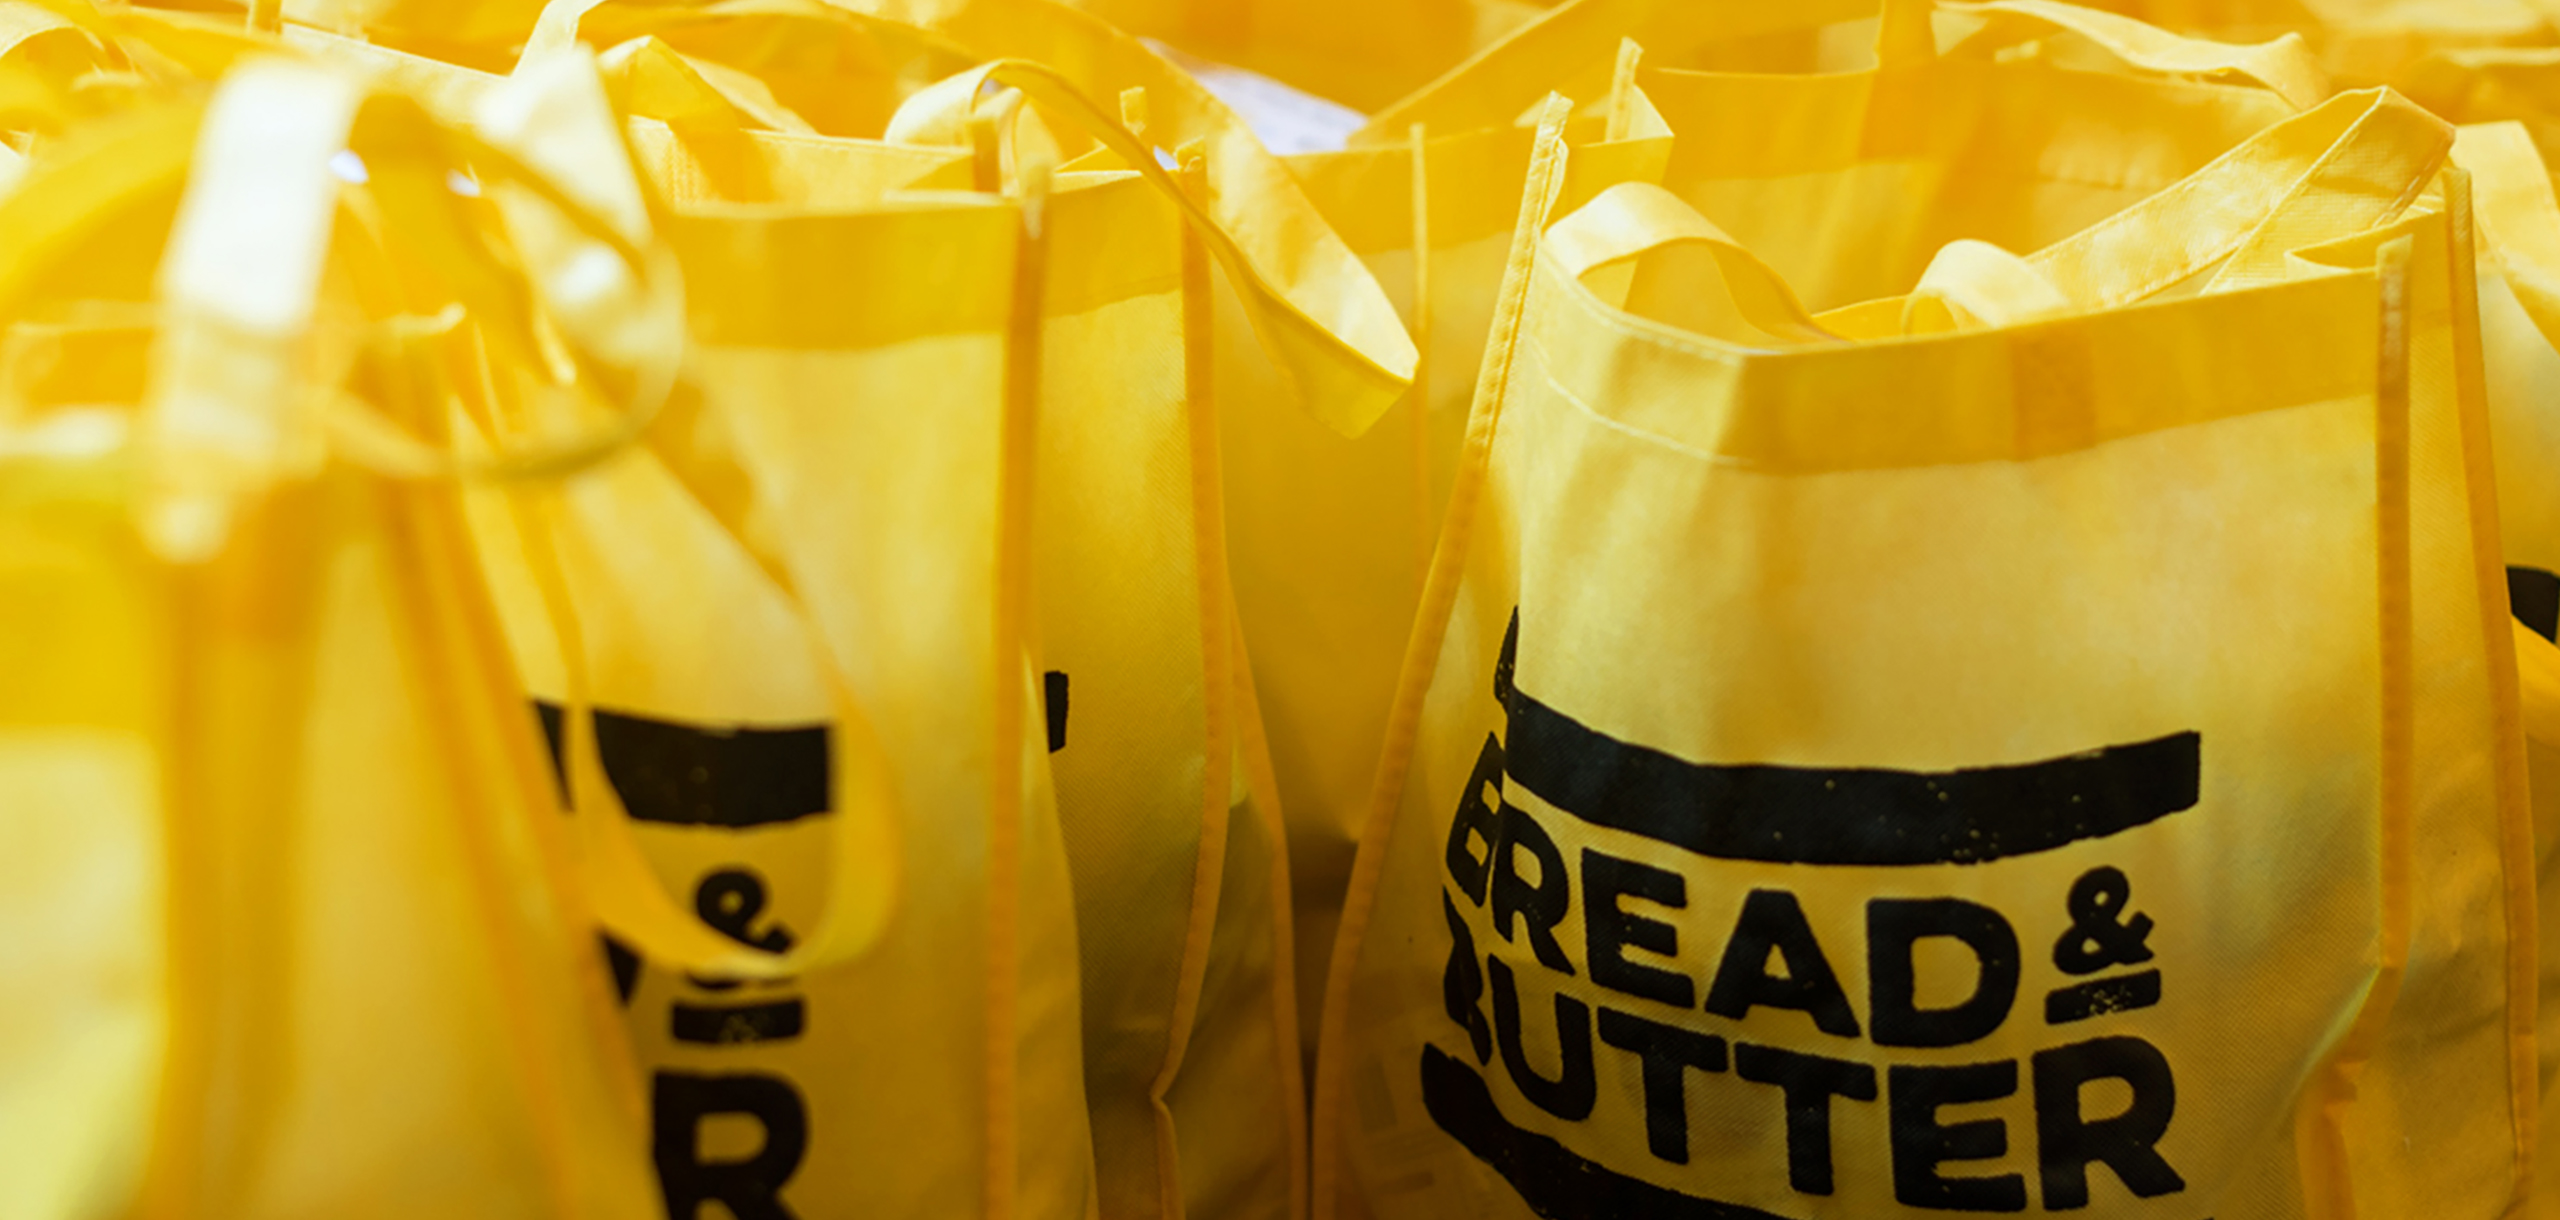 Tote bags for food startup Bread and Butter, designed by White Bear Studio